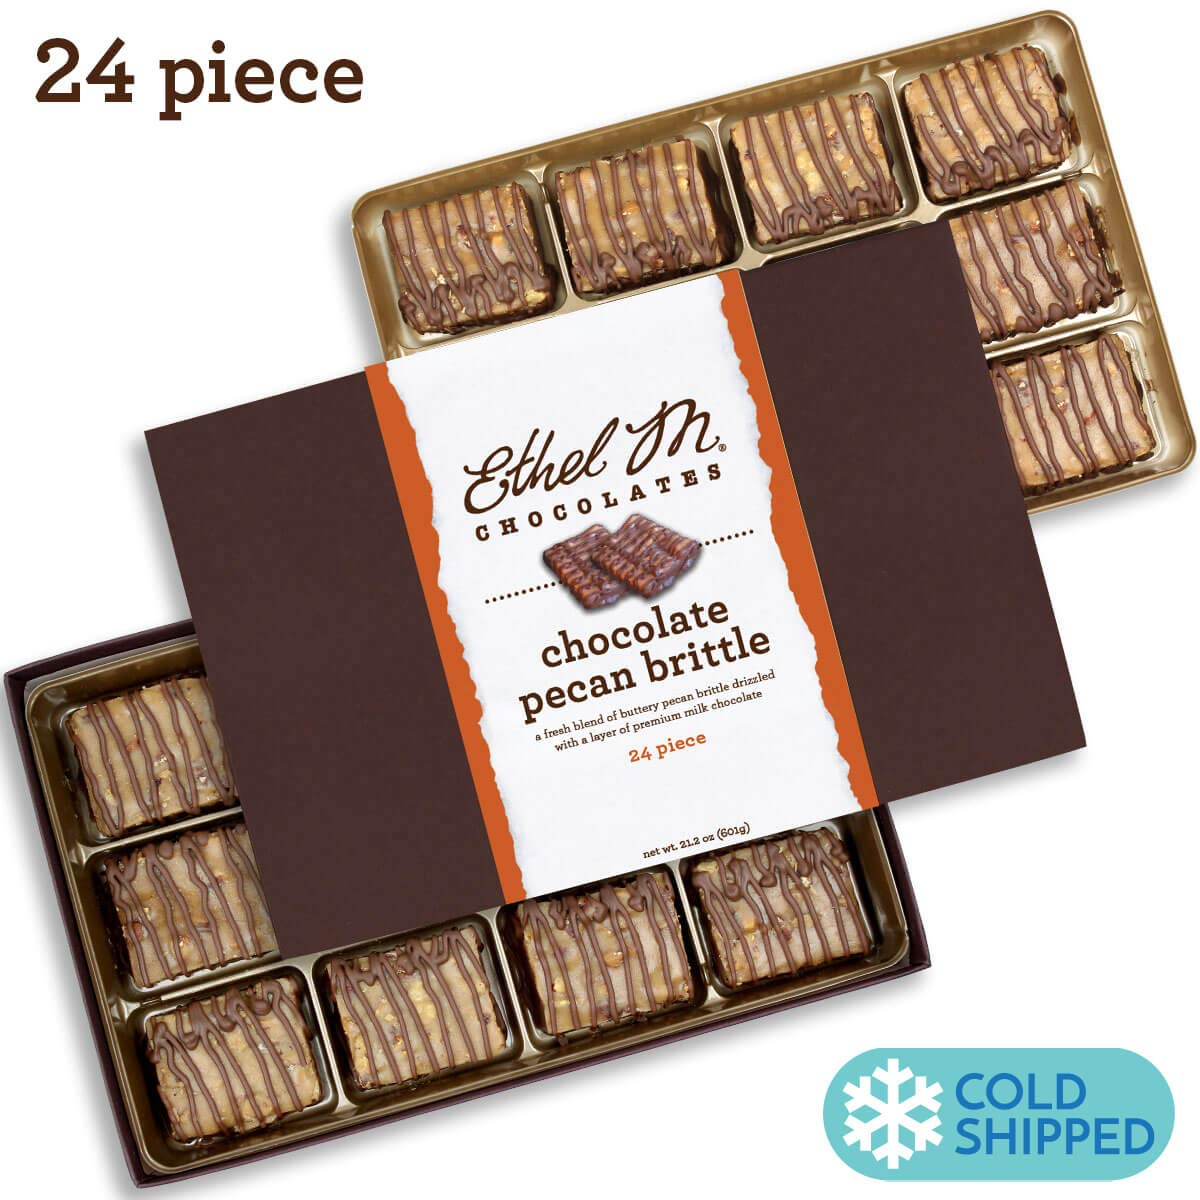 Ethel M Chocolates Chocolate Covered Pecan Brittle 24 piece by Ethel M. Chocolates